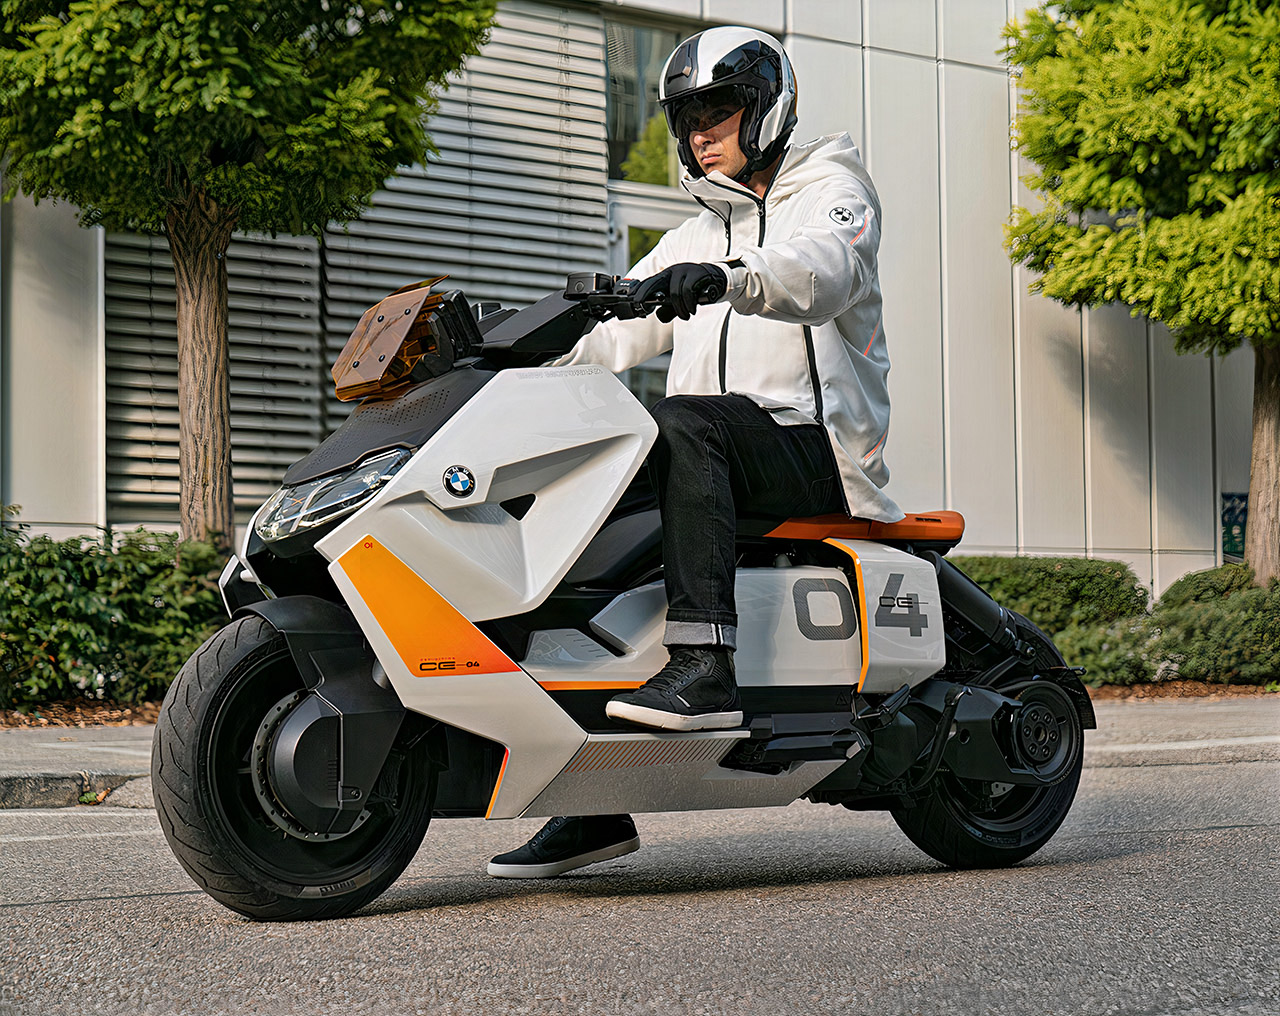 BMW Motorrad Definition CE 04 Electric Scooter